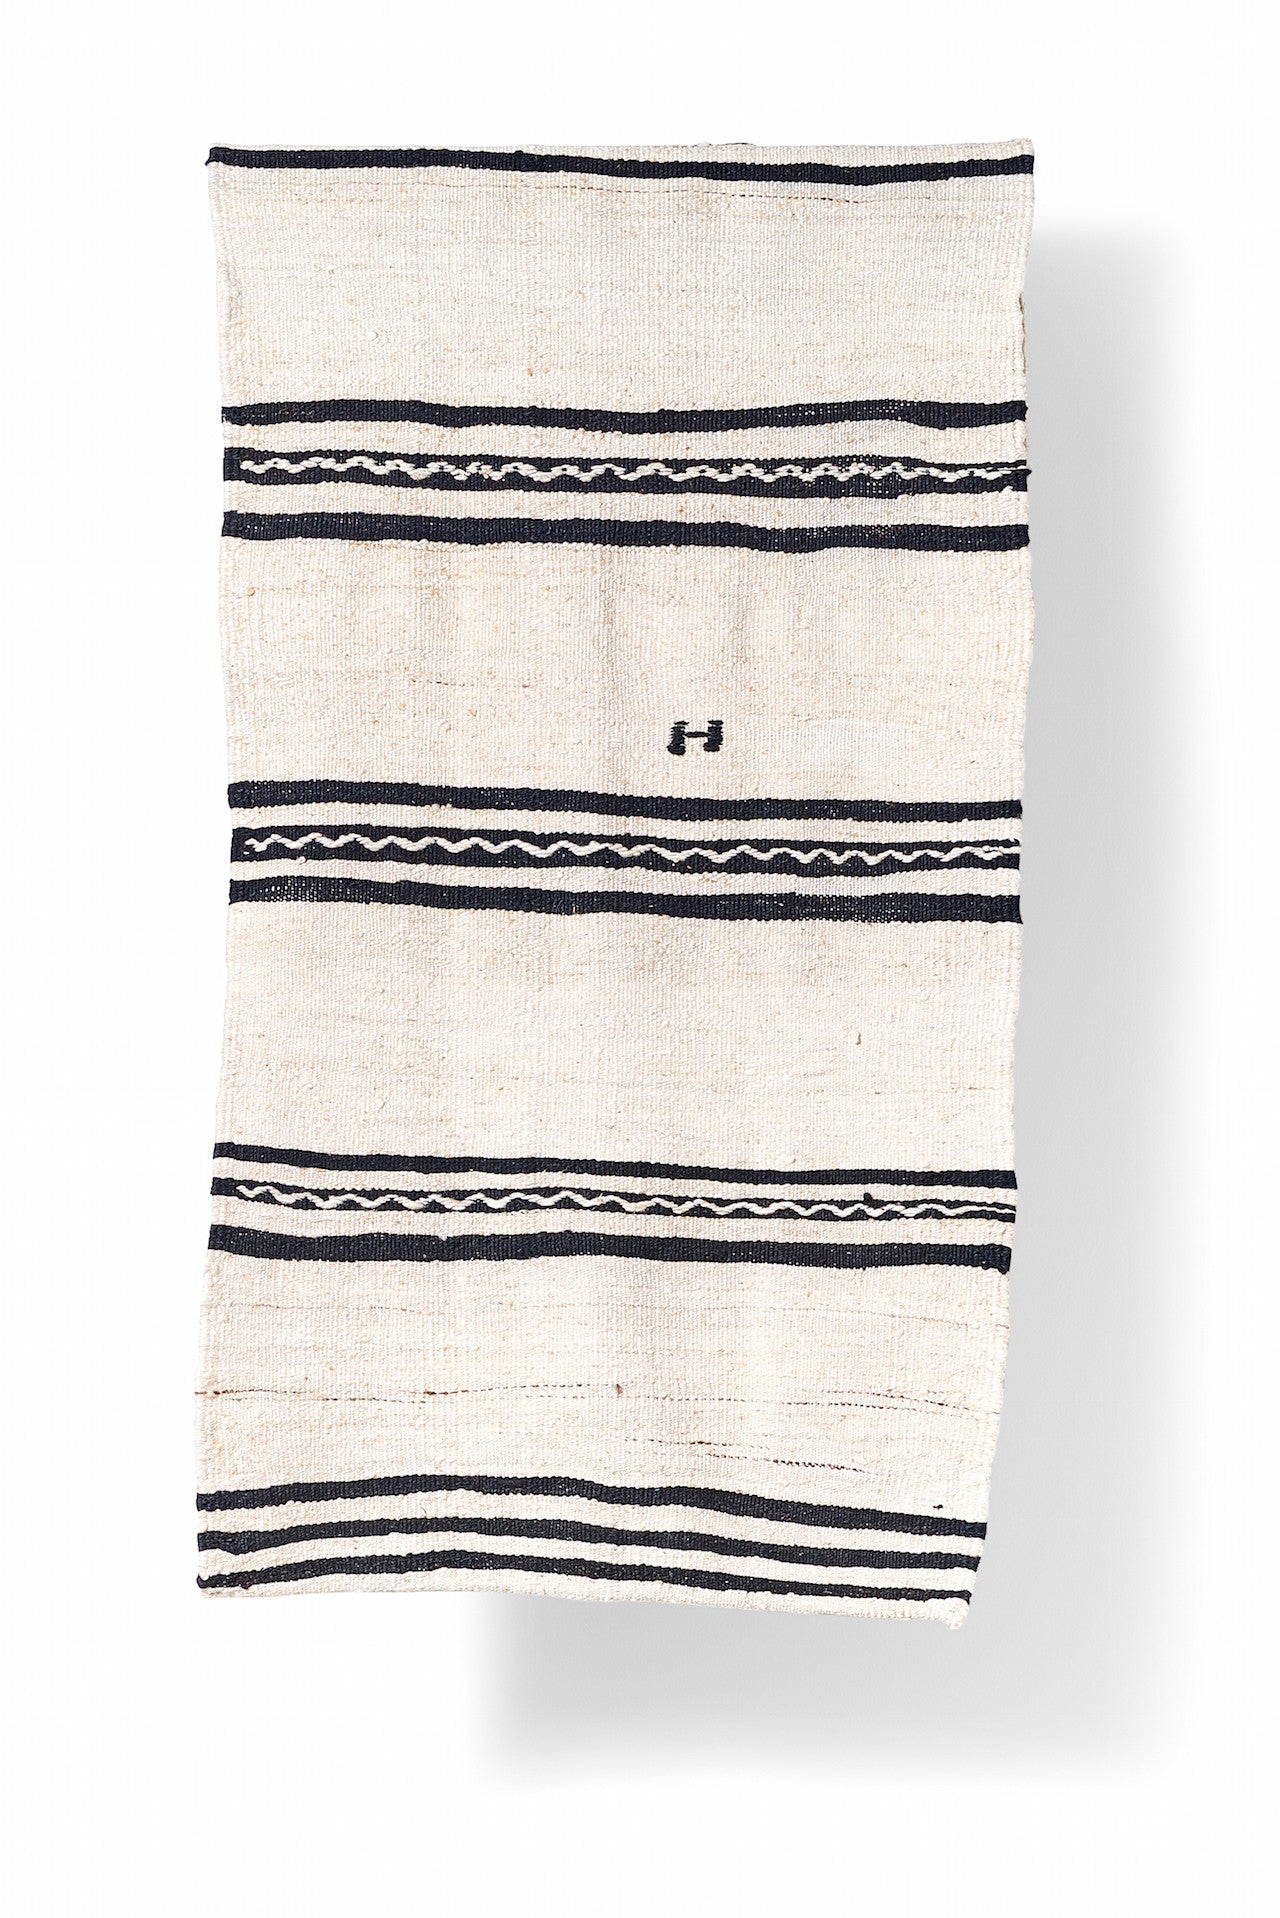 Turkish Kilim Striped Runner